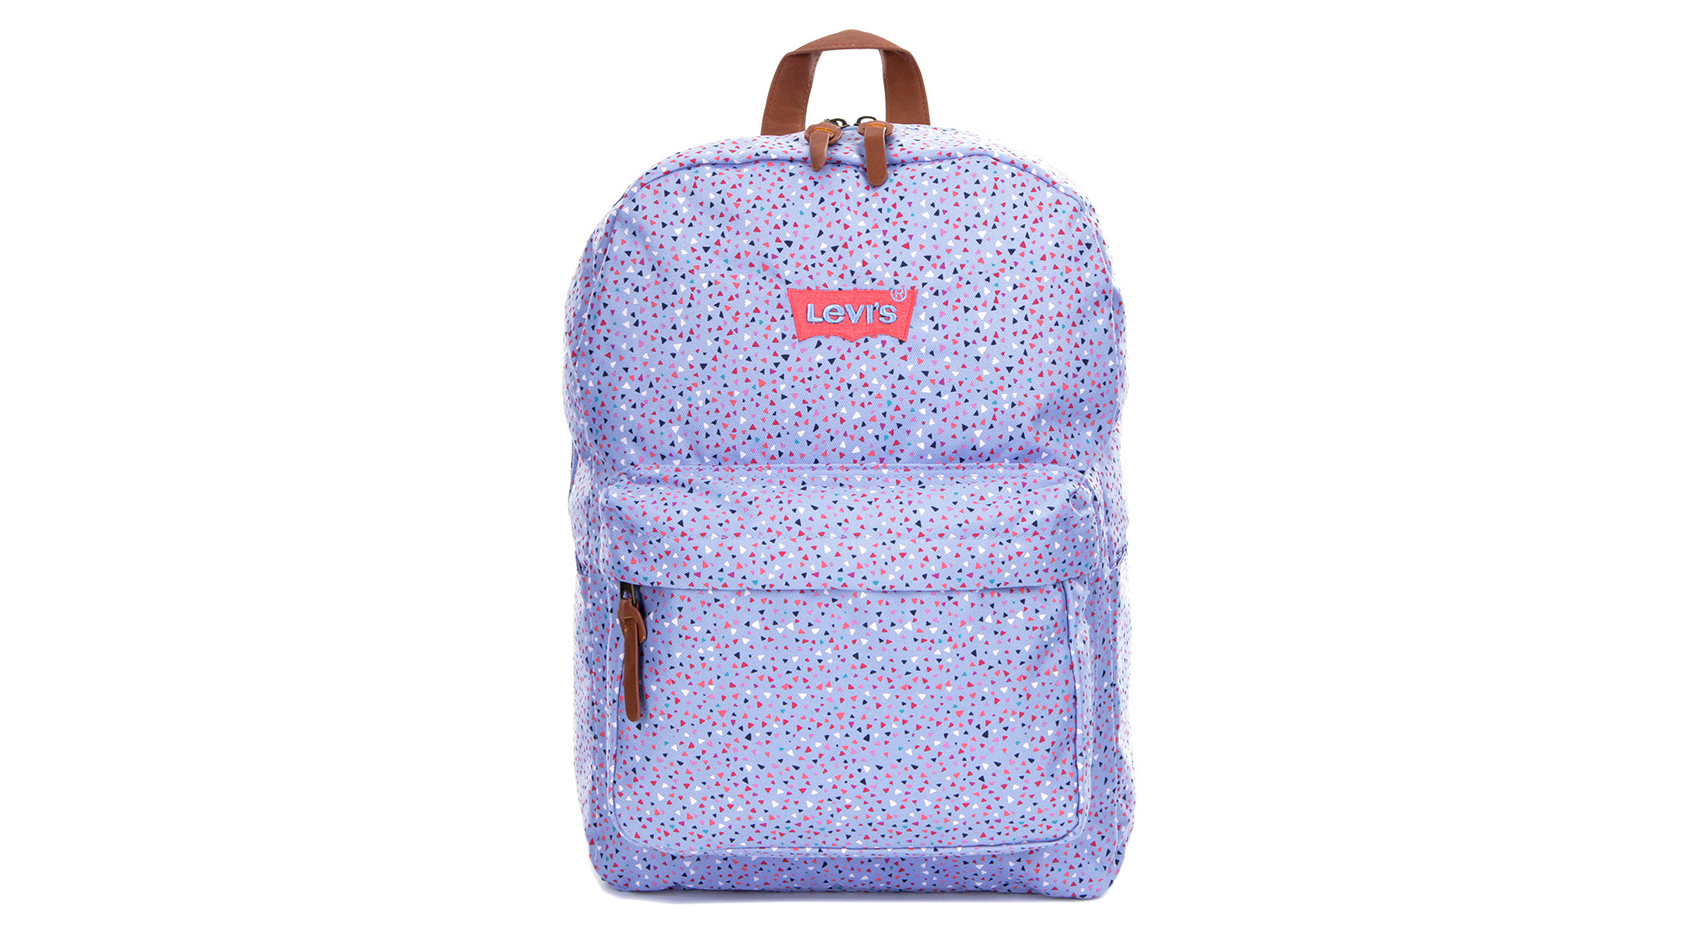 Levi's Lost Coast Backpack Purple